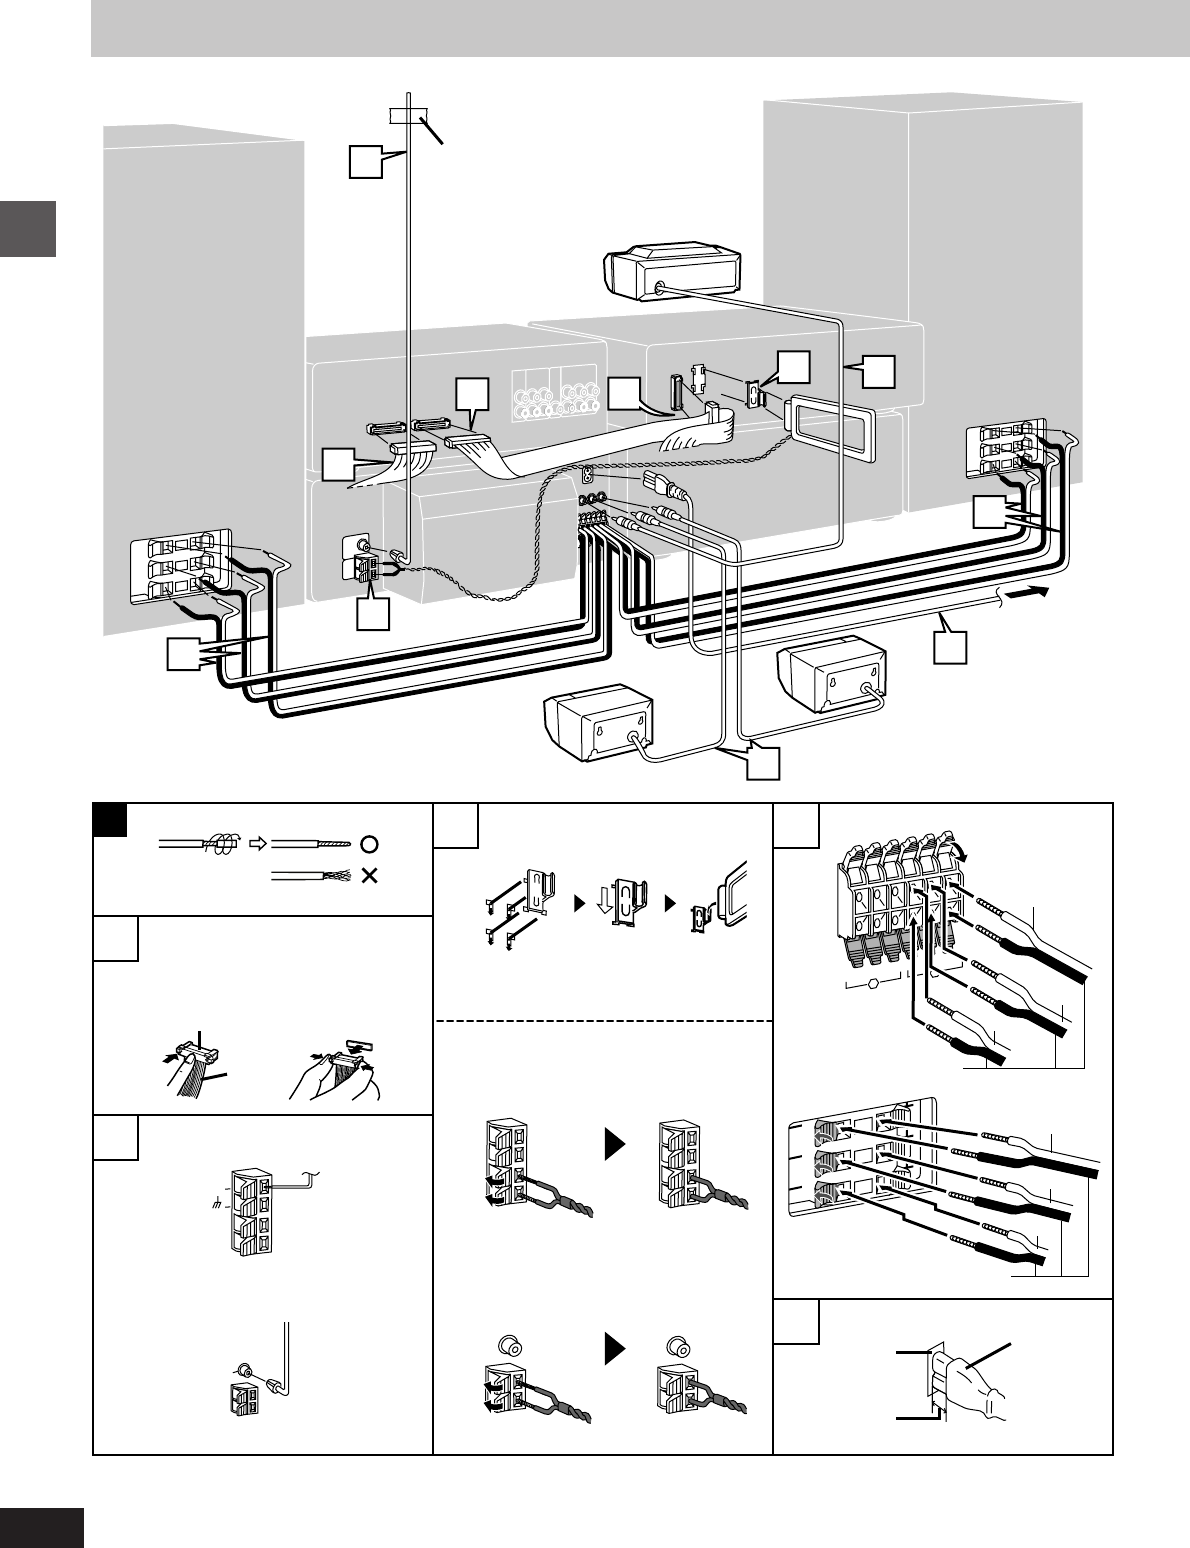 Technics Stereo Speakers Wiring Diagram Home Speaker Diagrams Page 6 Of Theater System Sc Eh760 User Guide